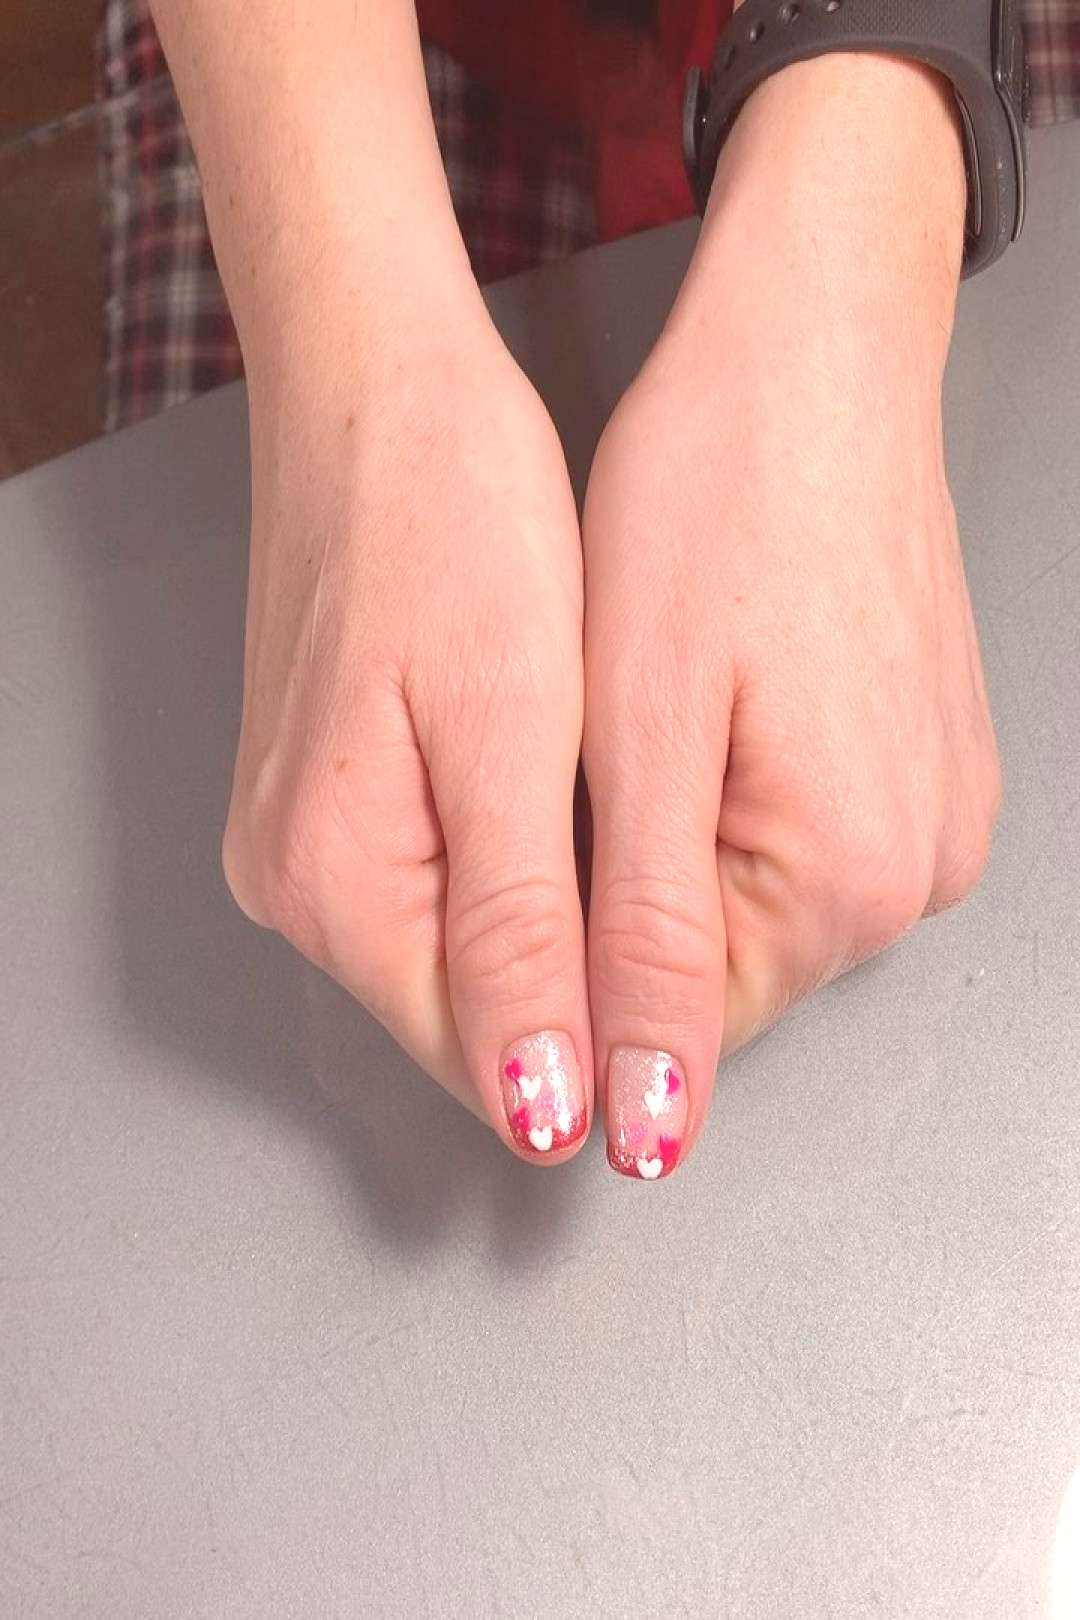 Still loving these gel French tips from Valentines Day * * * * #